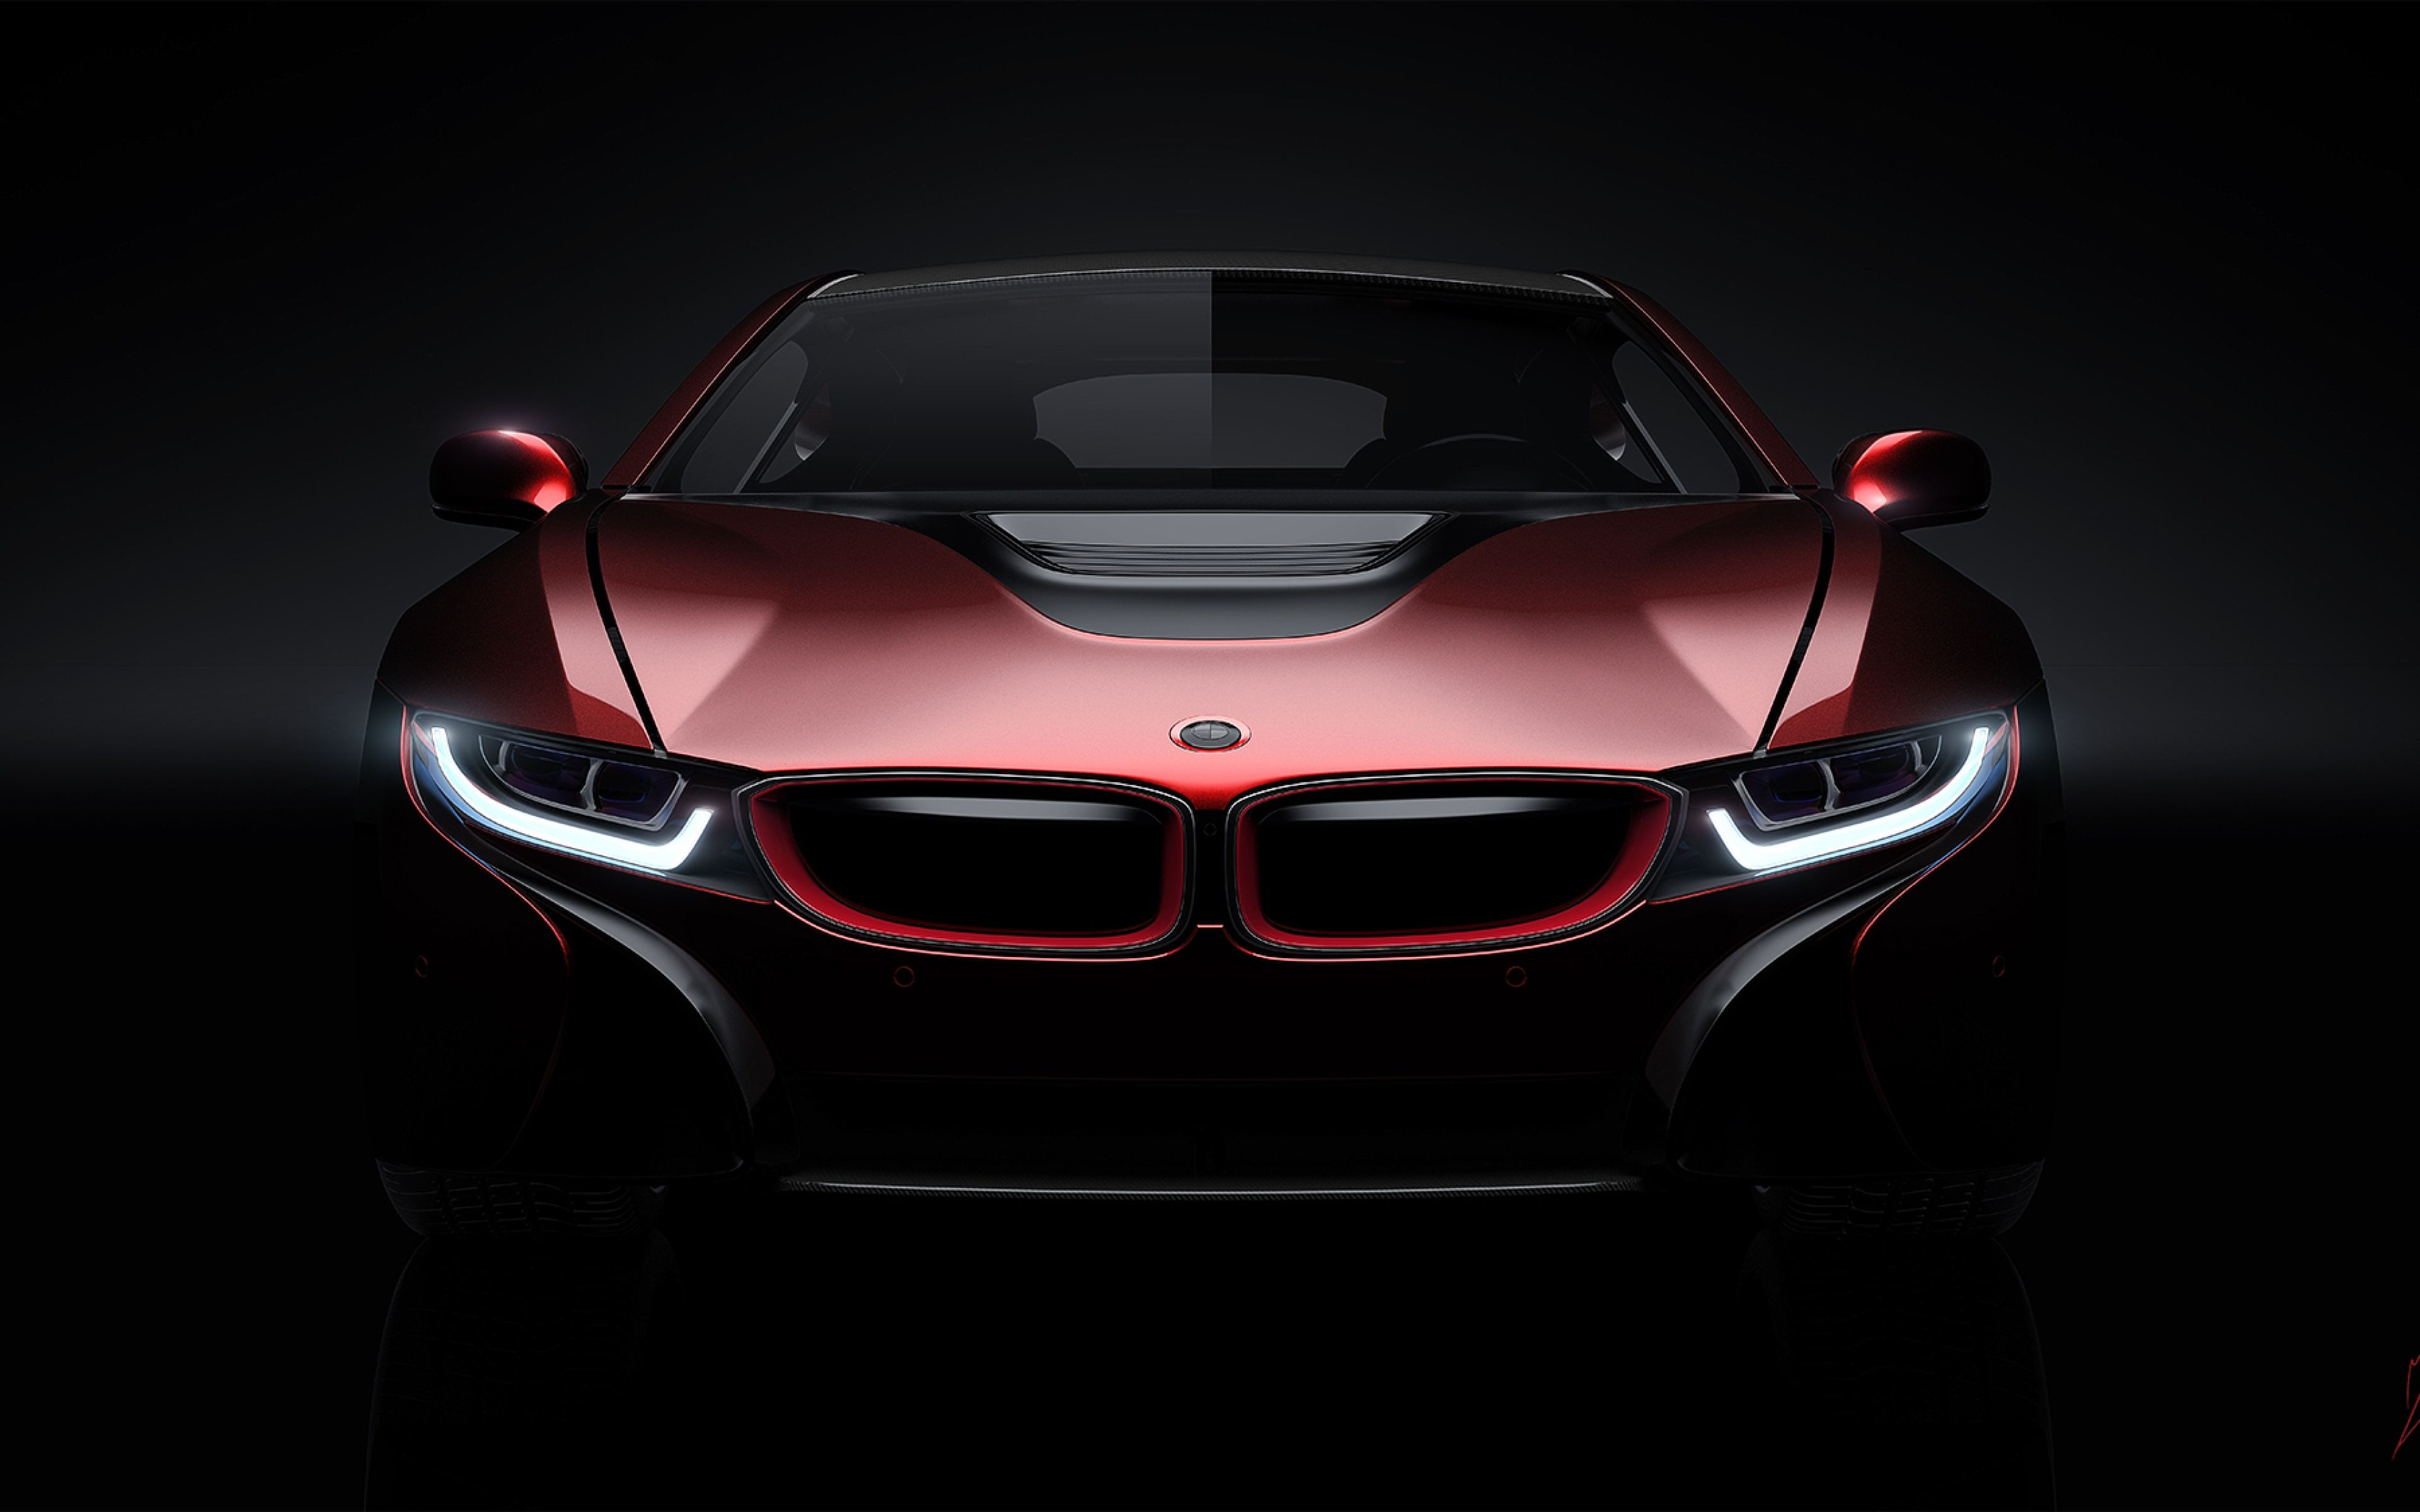 bmw black i8 front download wallpaper 3840x2400 bmw i8 concept front view ultra hd 4k  [ 3840 x 2400 Pixel ]